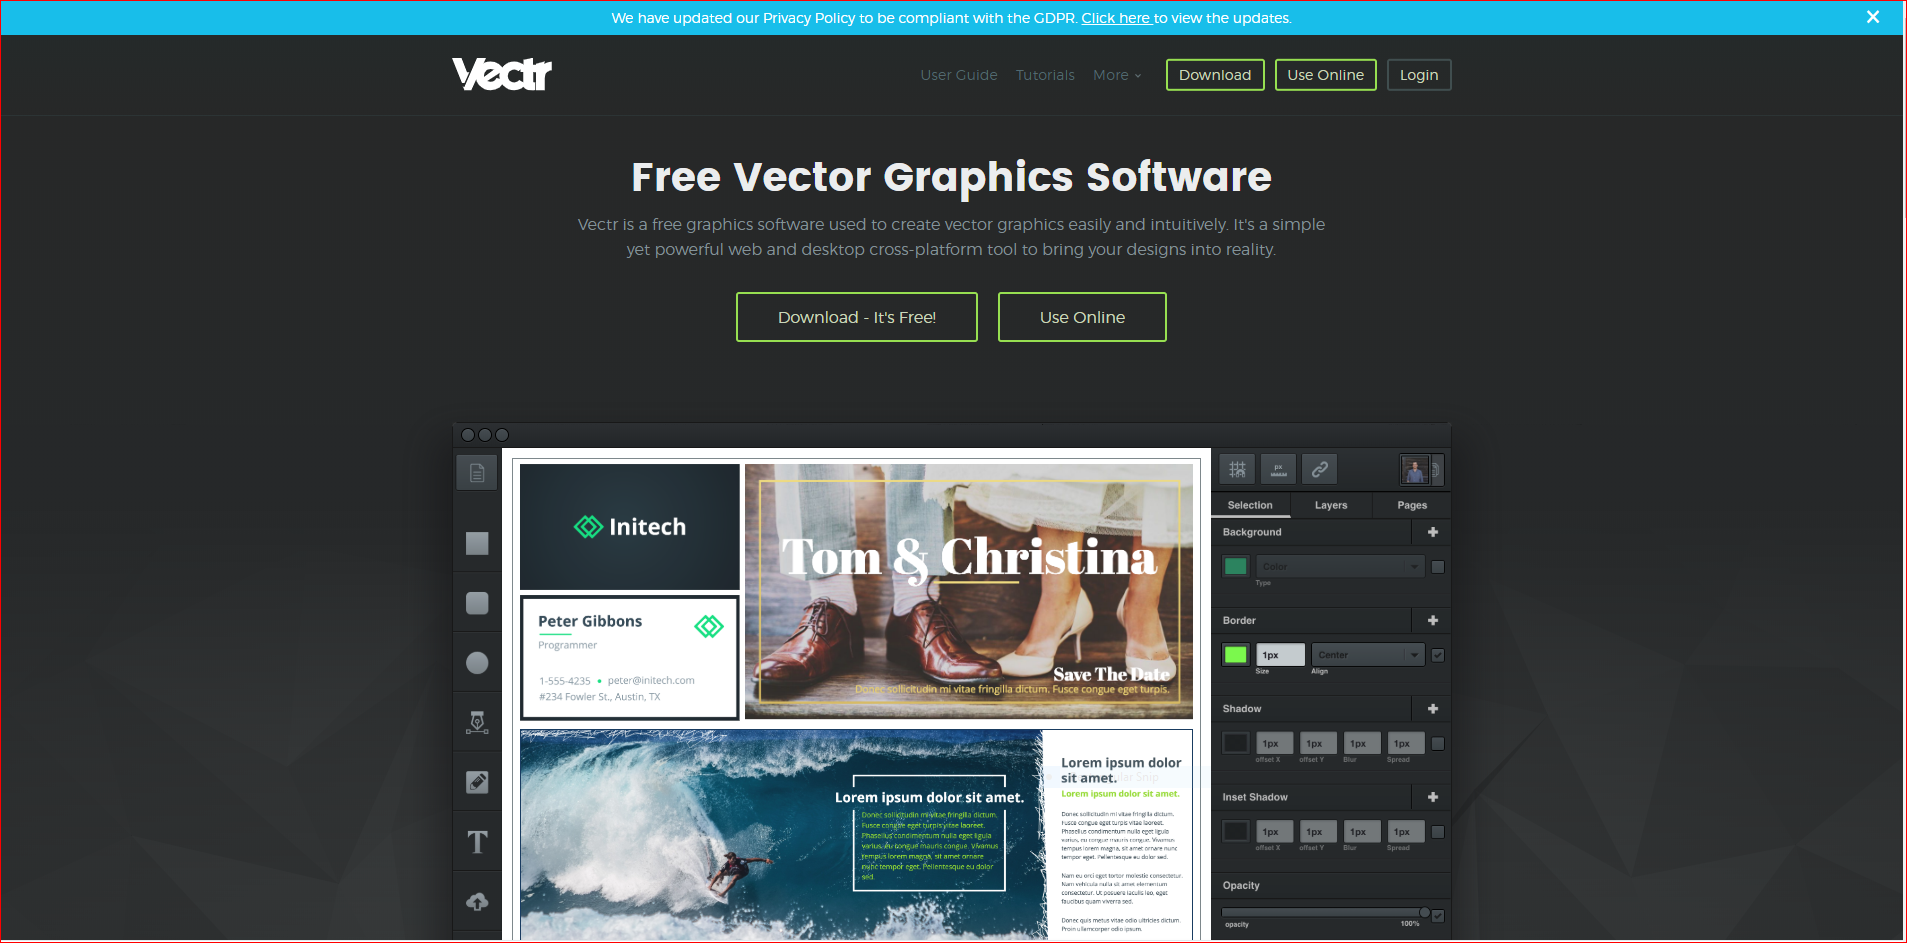 Vectr screen shot for SVG